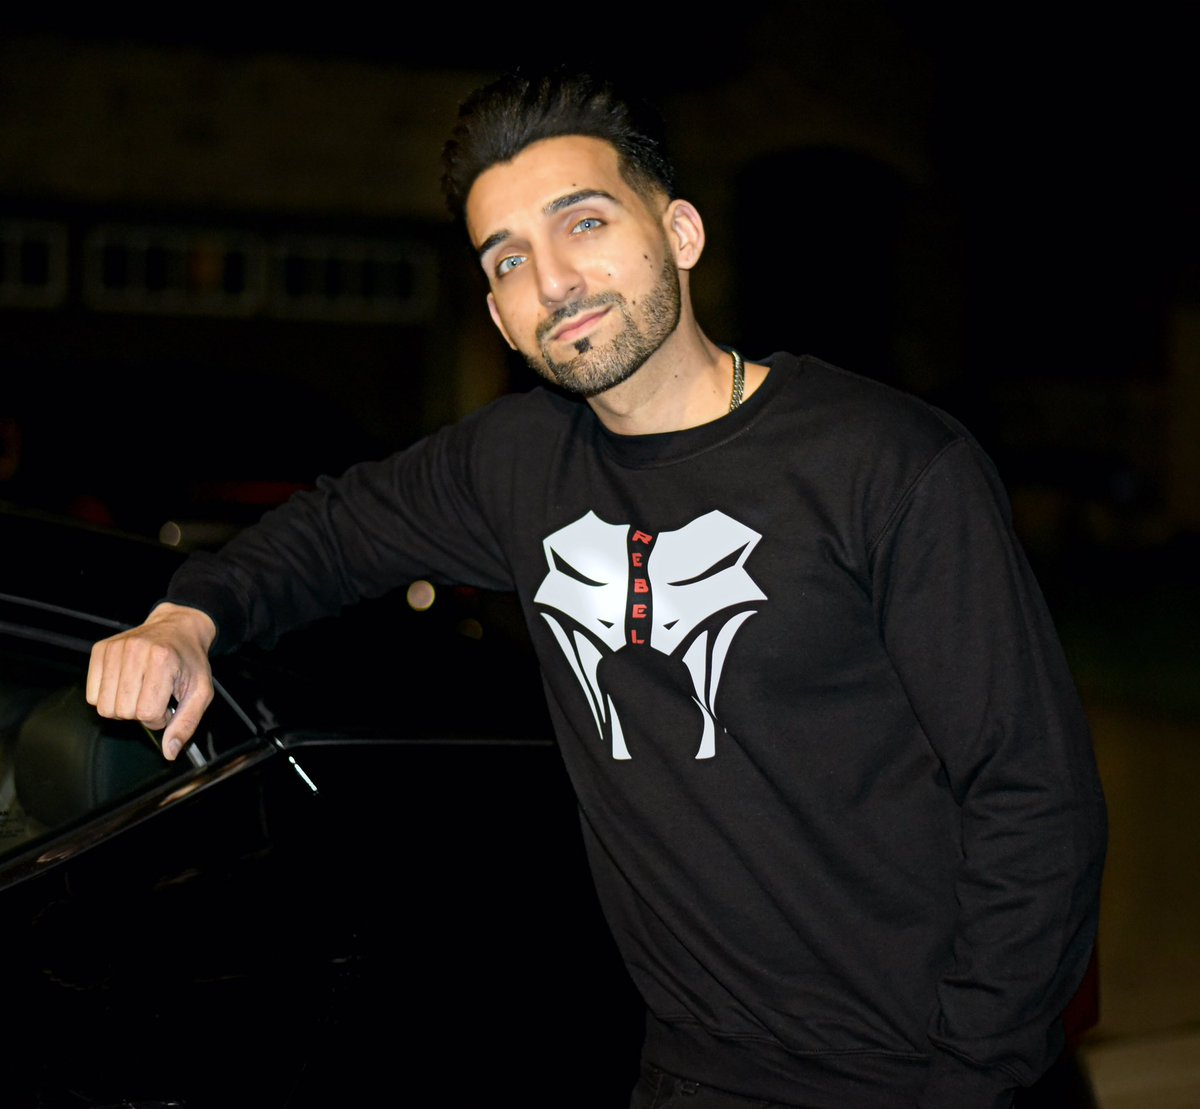 Sham Idrees On Twitter Every Year On My Birthday I Feel Blessed To Be Surrounded By You Beautiful People Happybirthdayshamidrees